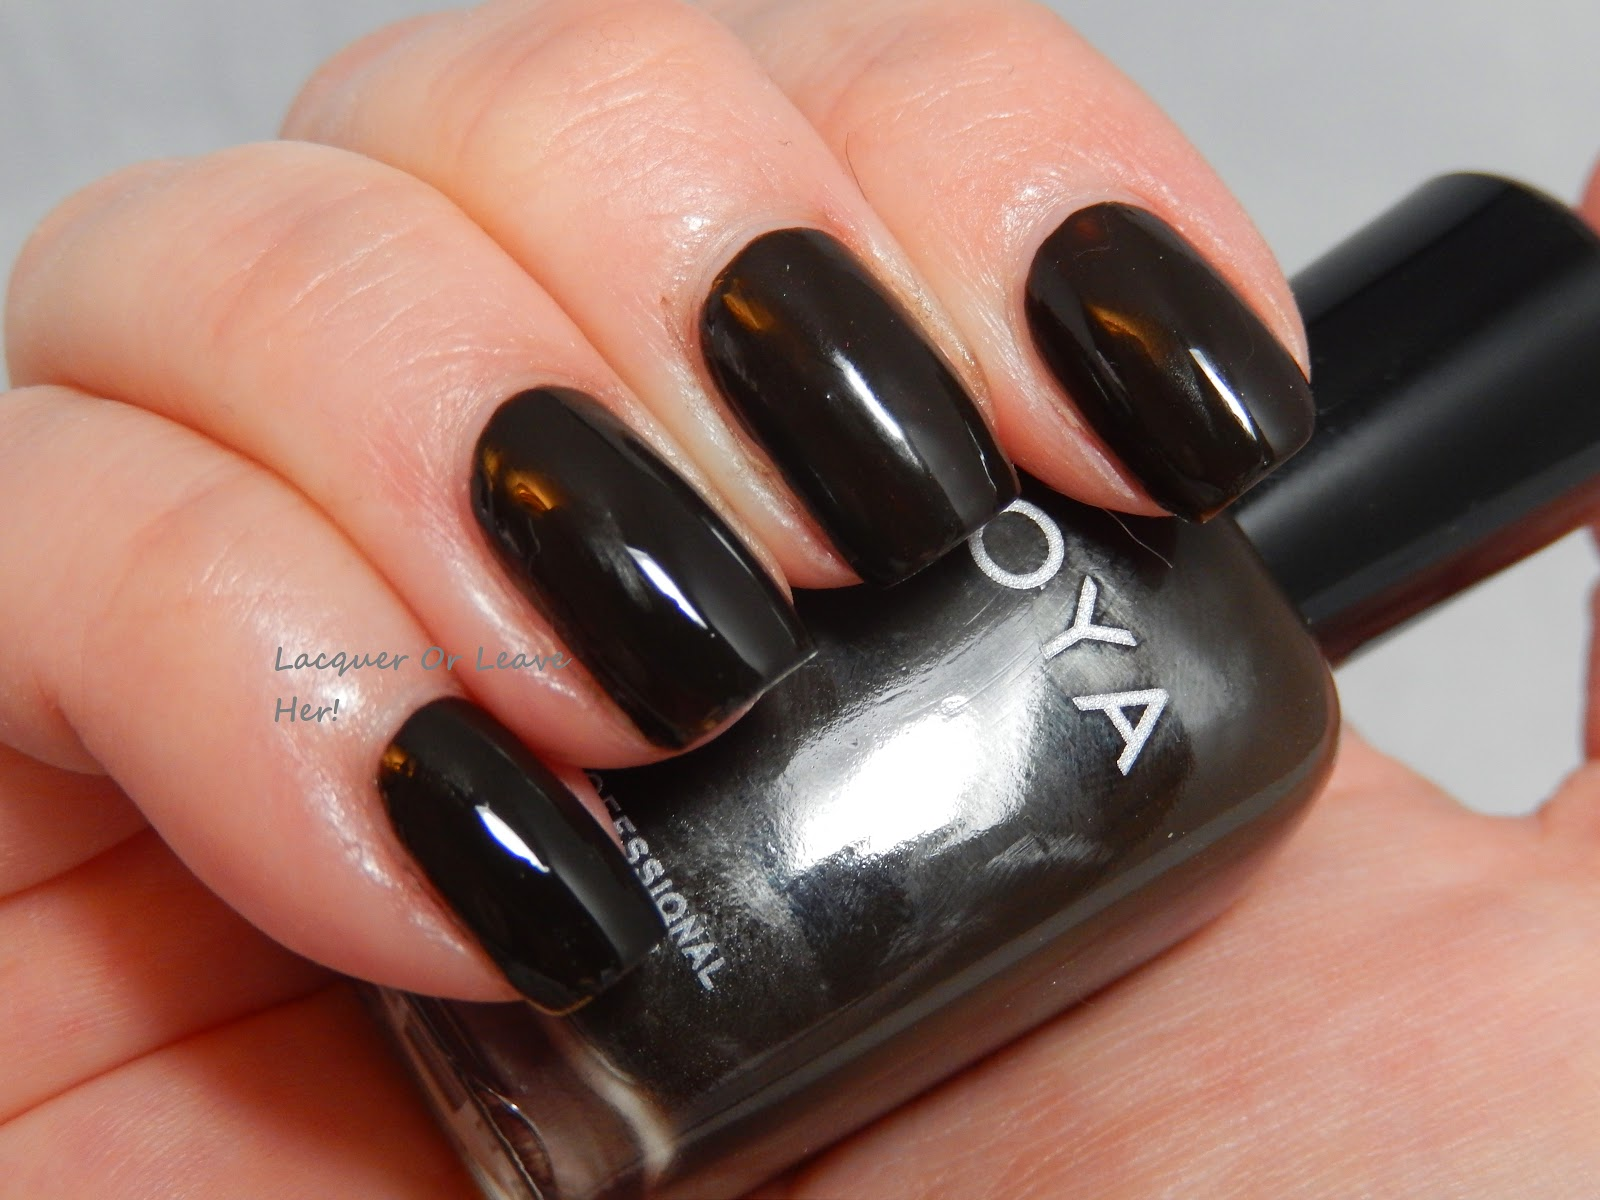 Zoya Codie Lacquer or Leave Her!:...